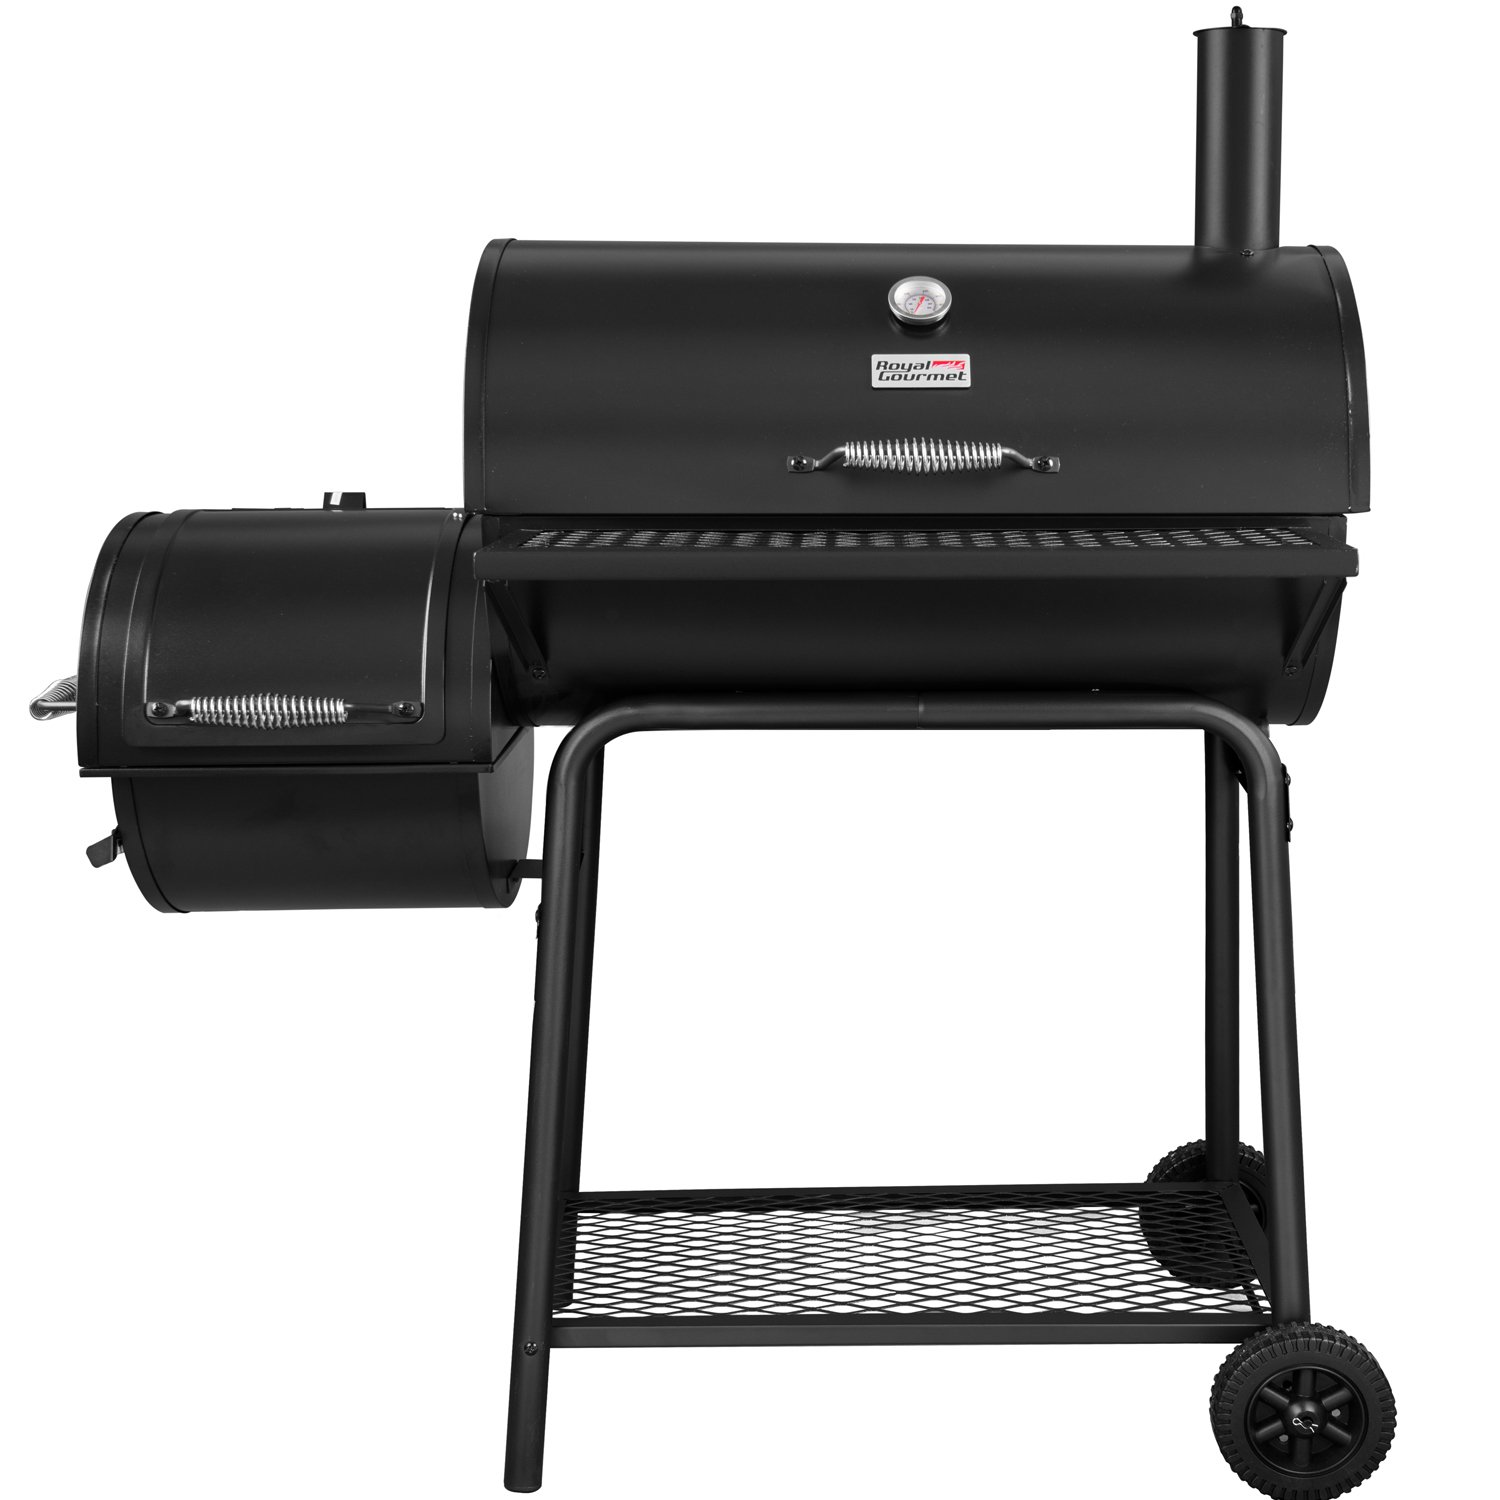 Royal Gourmet CC1830F Charcoal Grill with Offset Smoker, Black